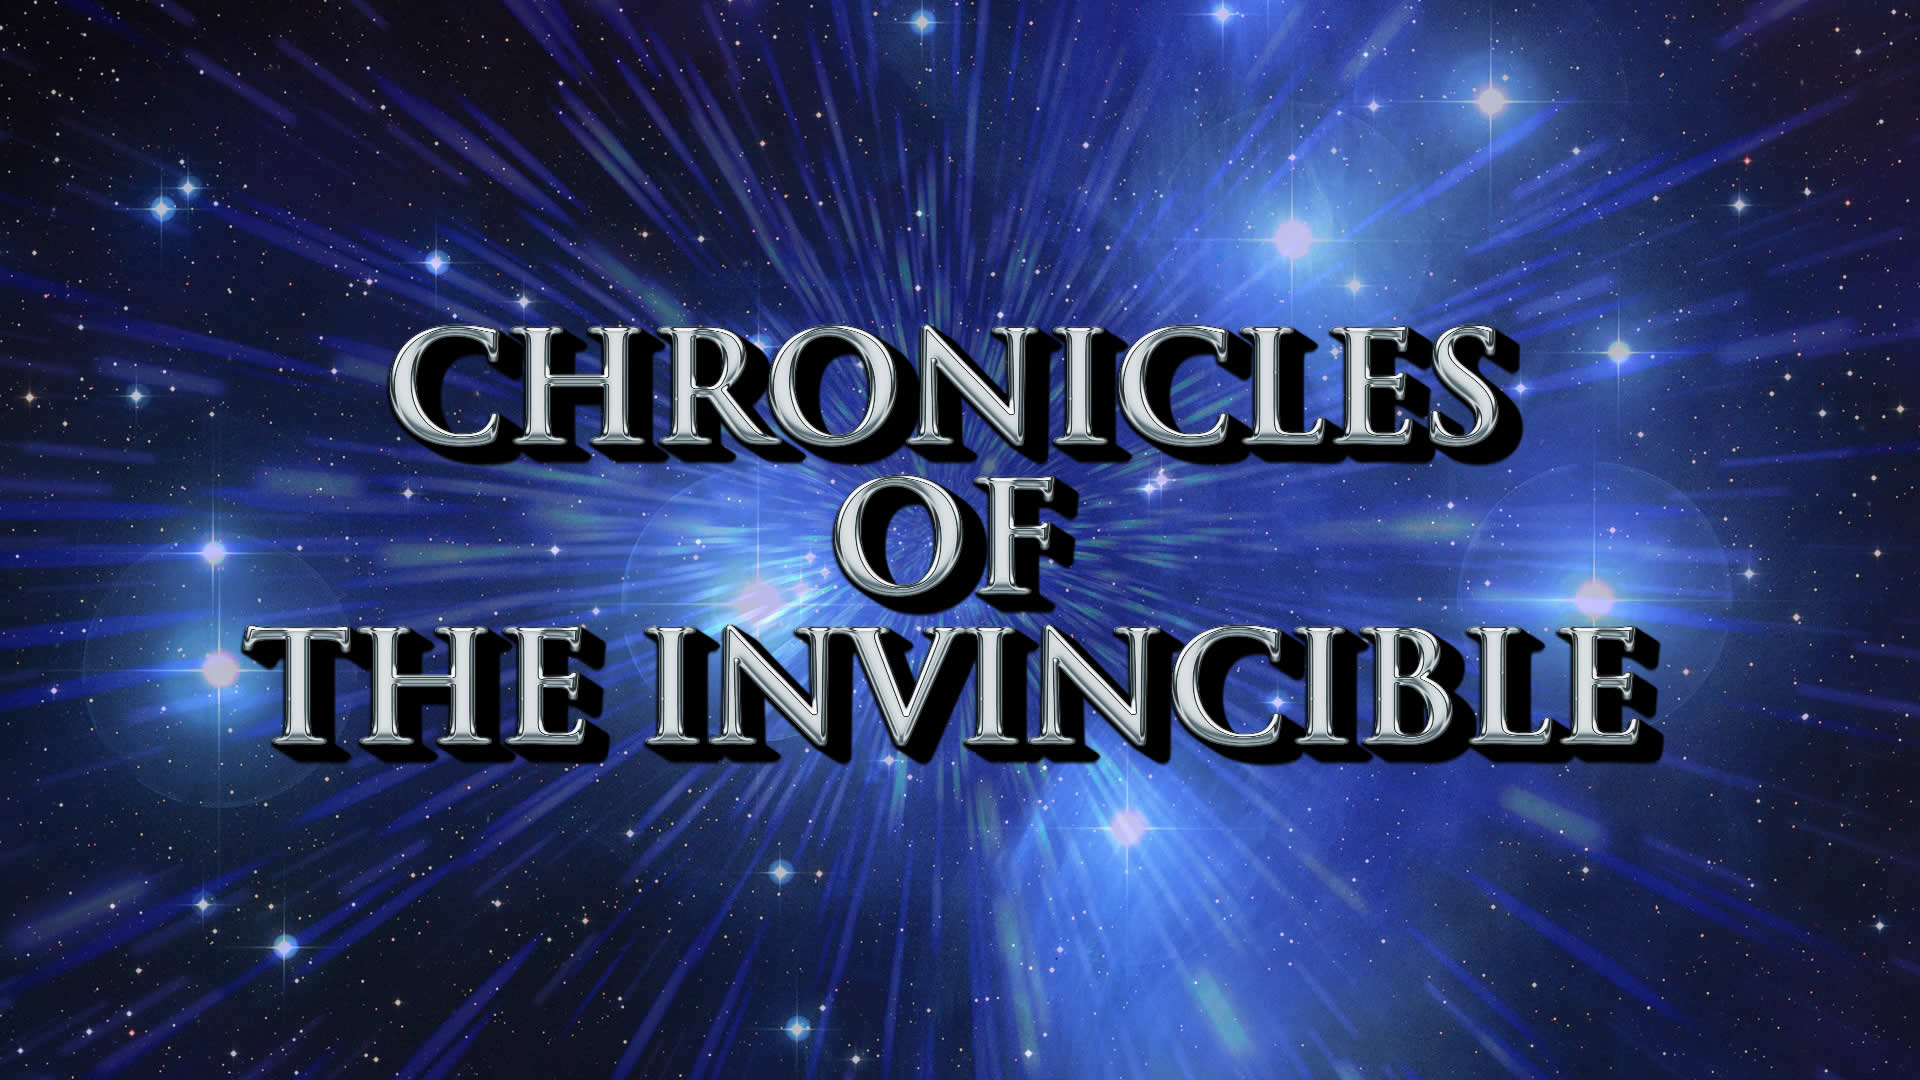 Chronicles of The Invincible